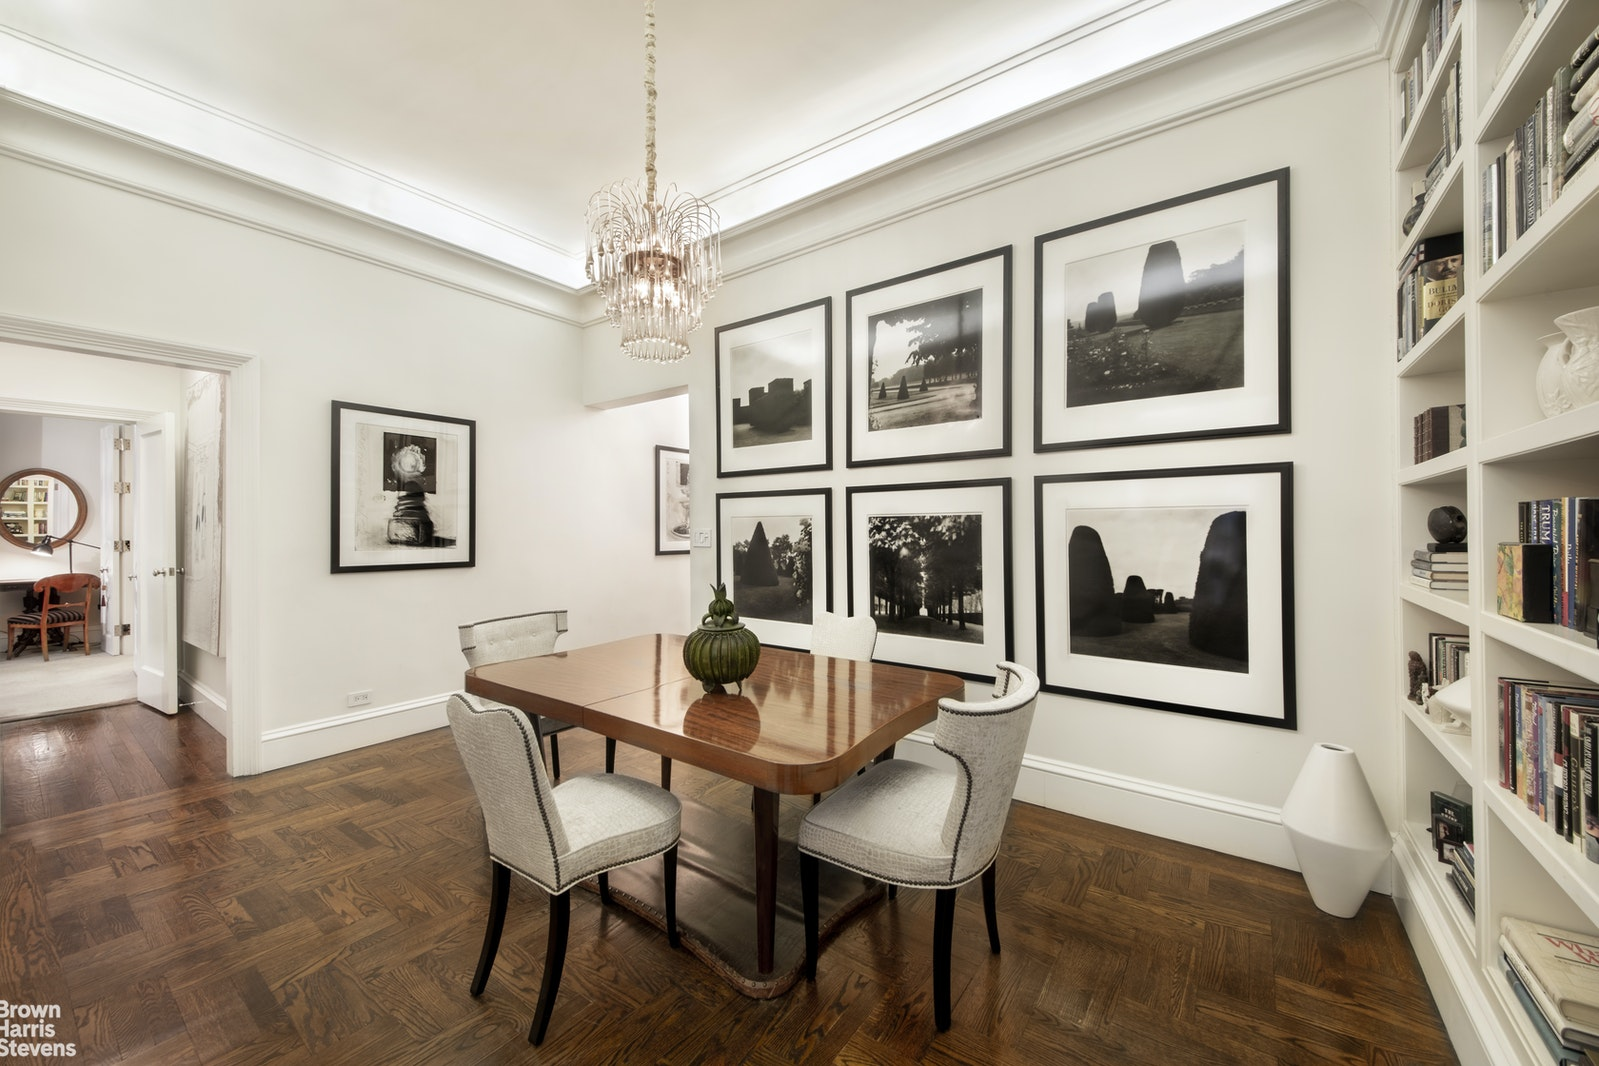 180 WEST 58TH STREET 4B, Midtown West, $1,555,000, Web #: 19619550